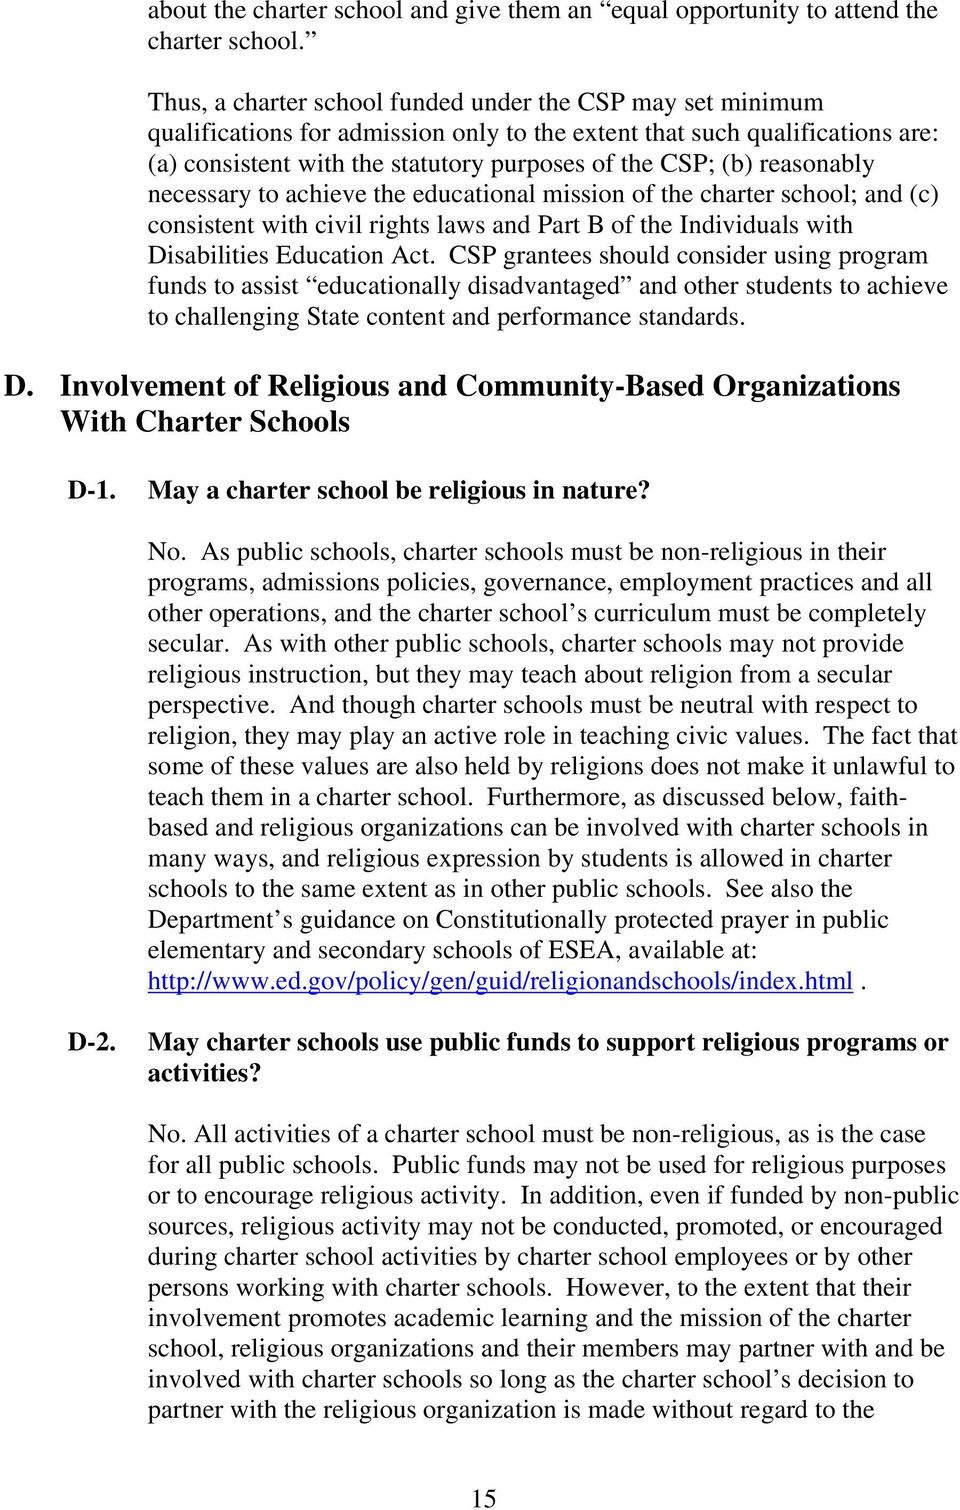 reasonably necessary to achieve the educational mission of the charter school; and (c) consistent with civil rights laws and Part B of the Individuals with Disabilities Education Act.